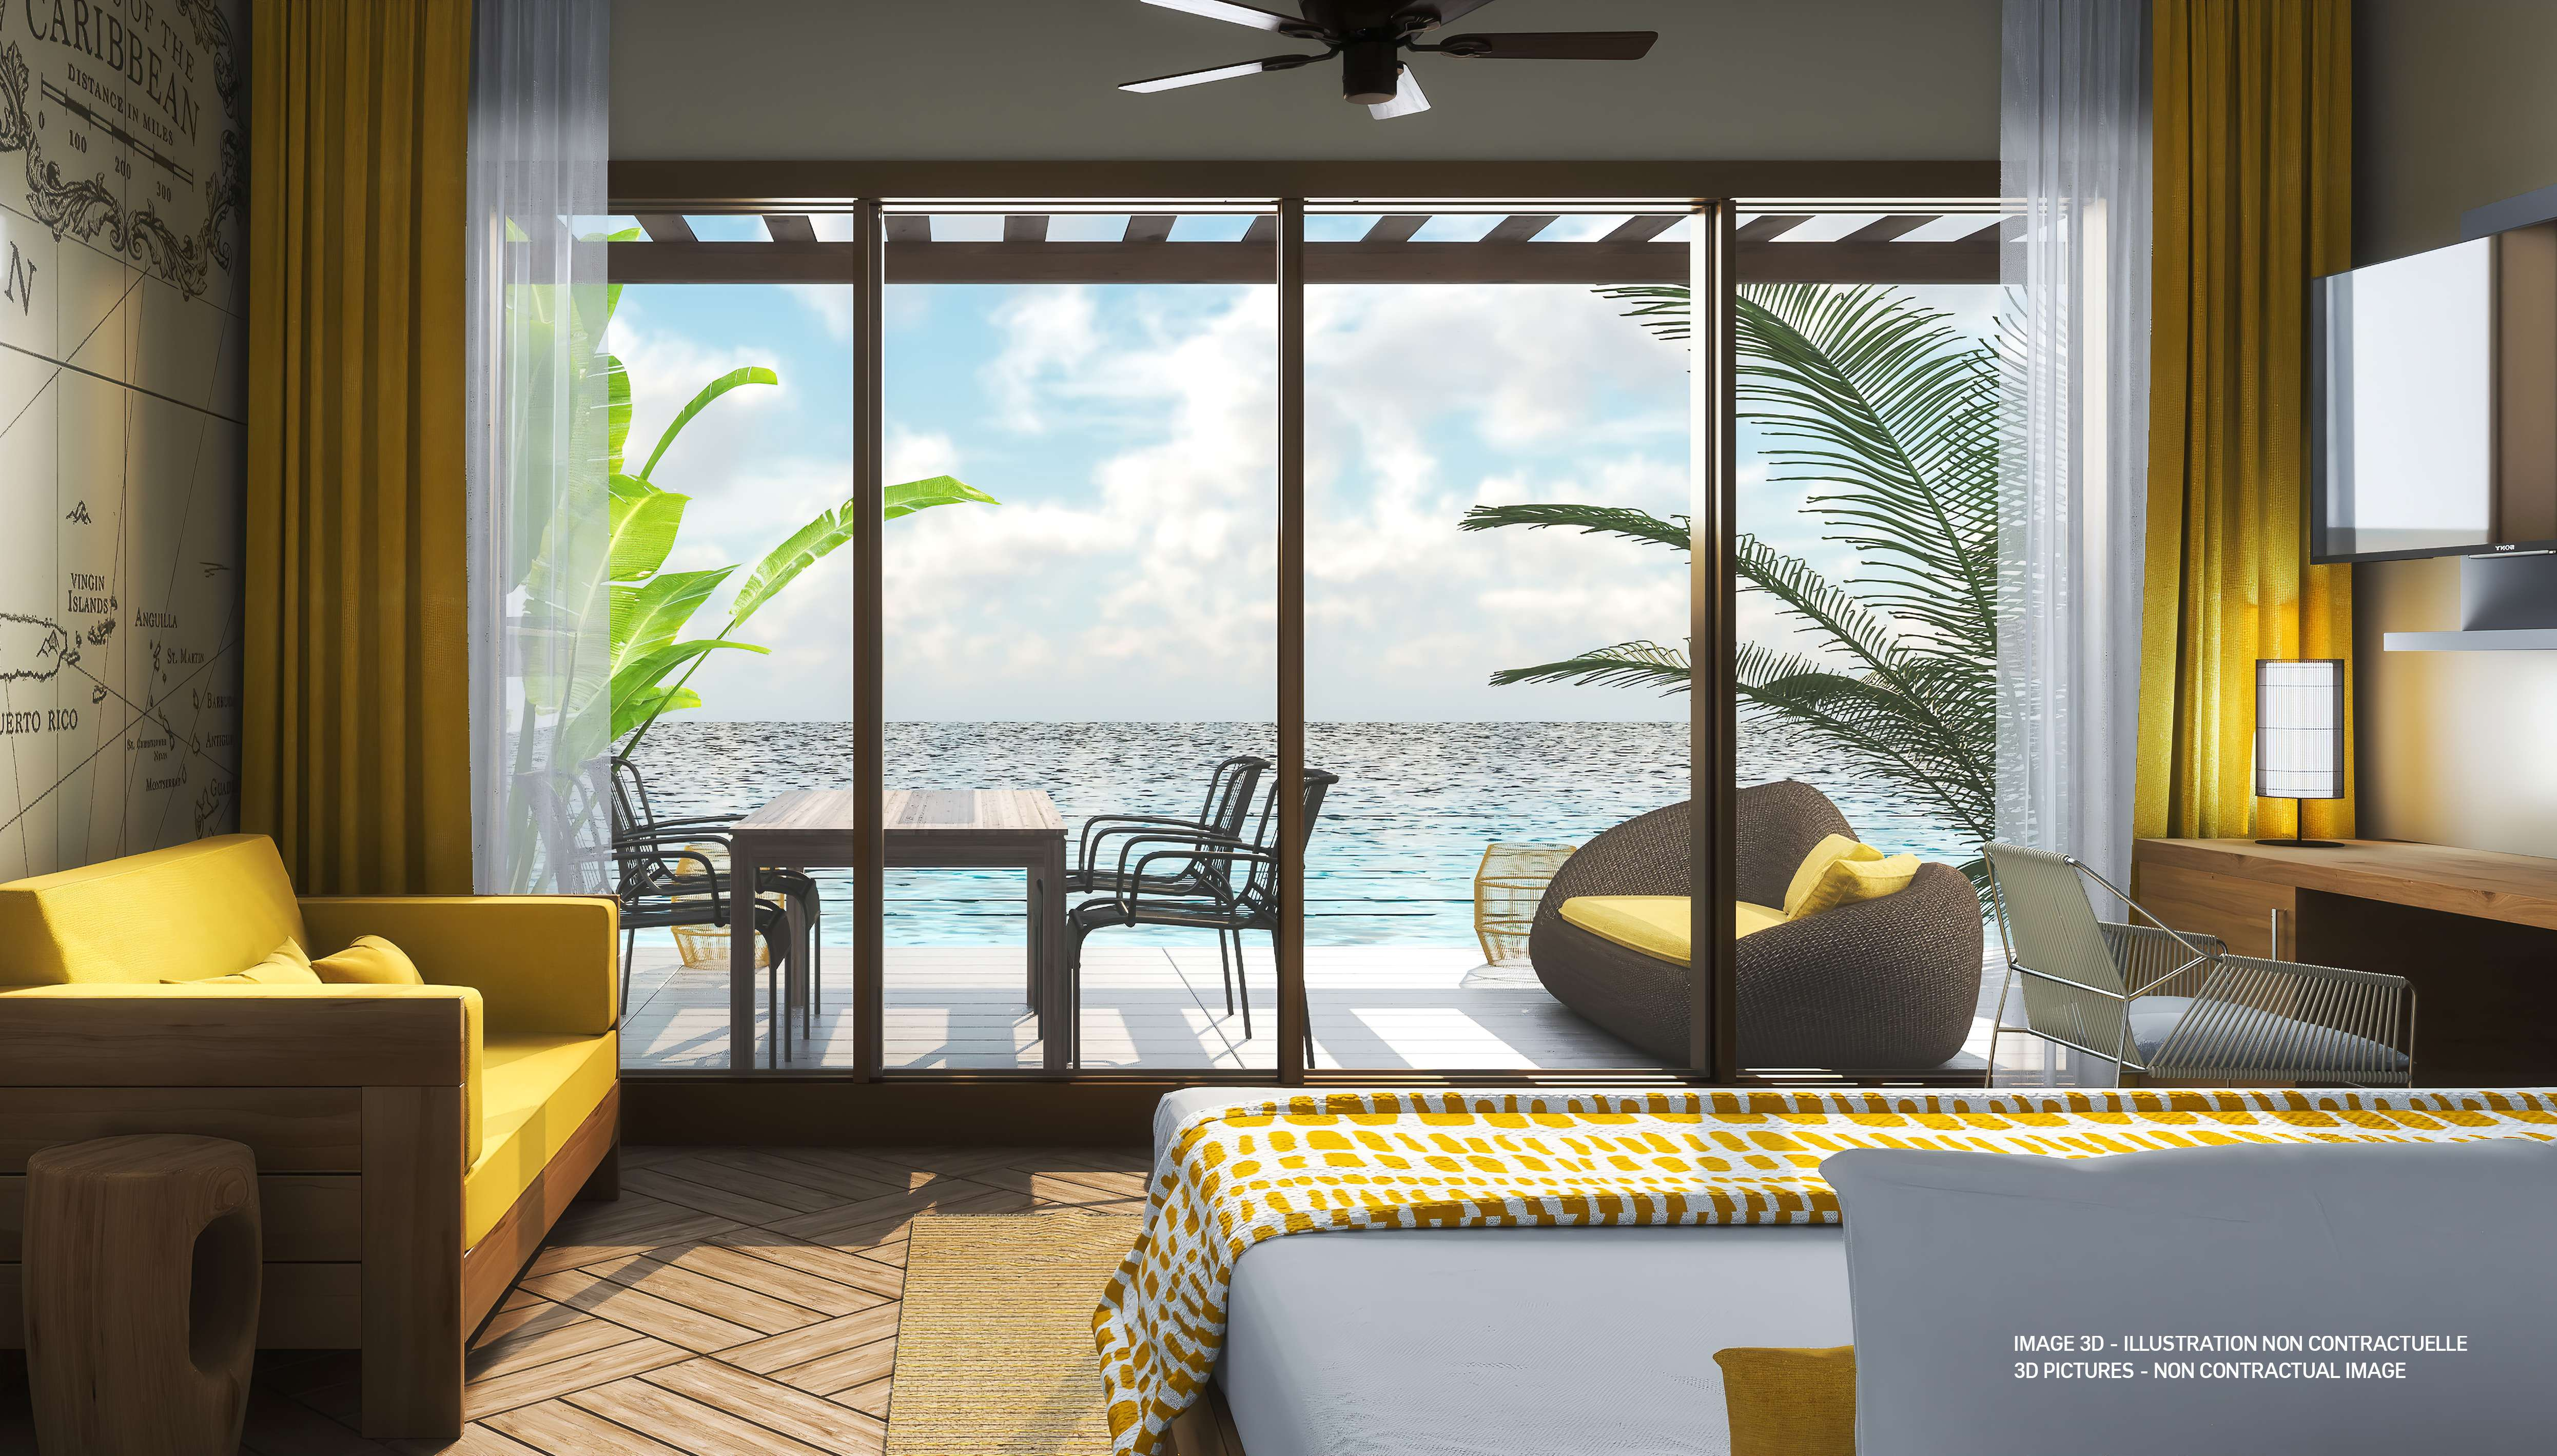 The Explorer Cove village has 158 family accommodations with large rooms.